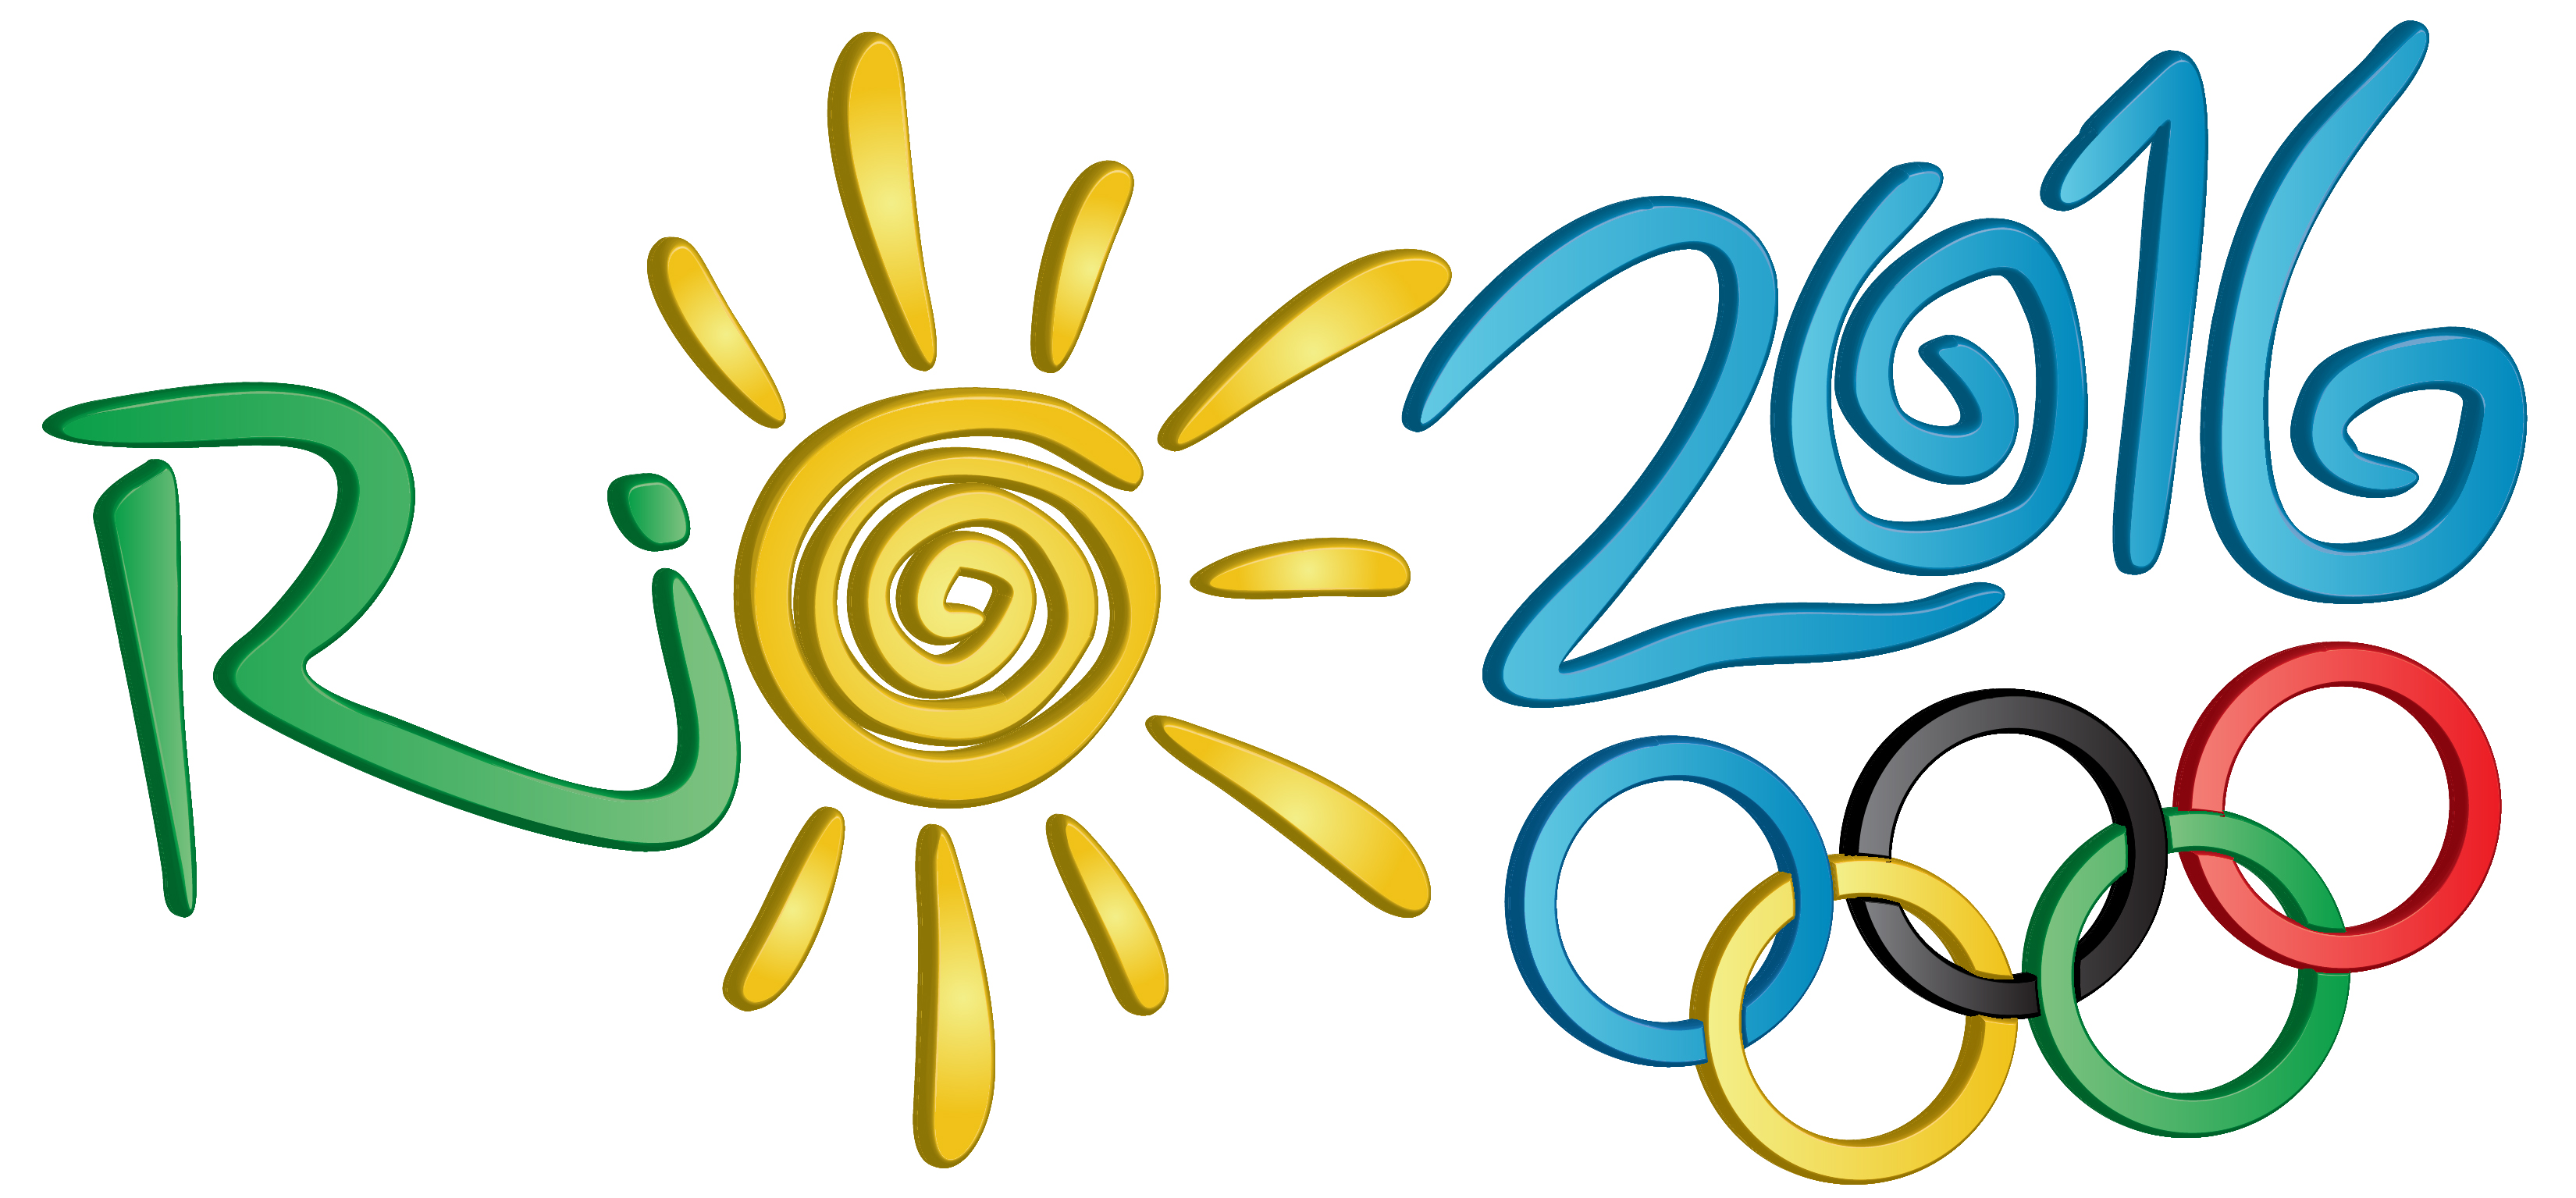 2016 clipart olympic torch. Rio relay to visit